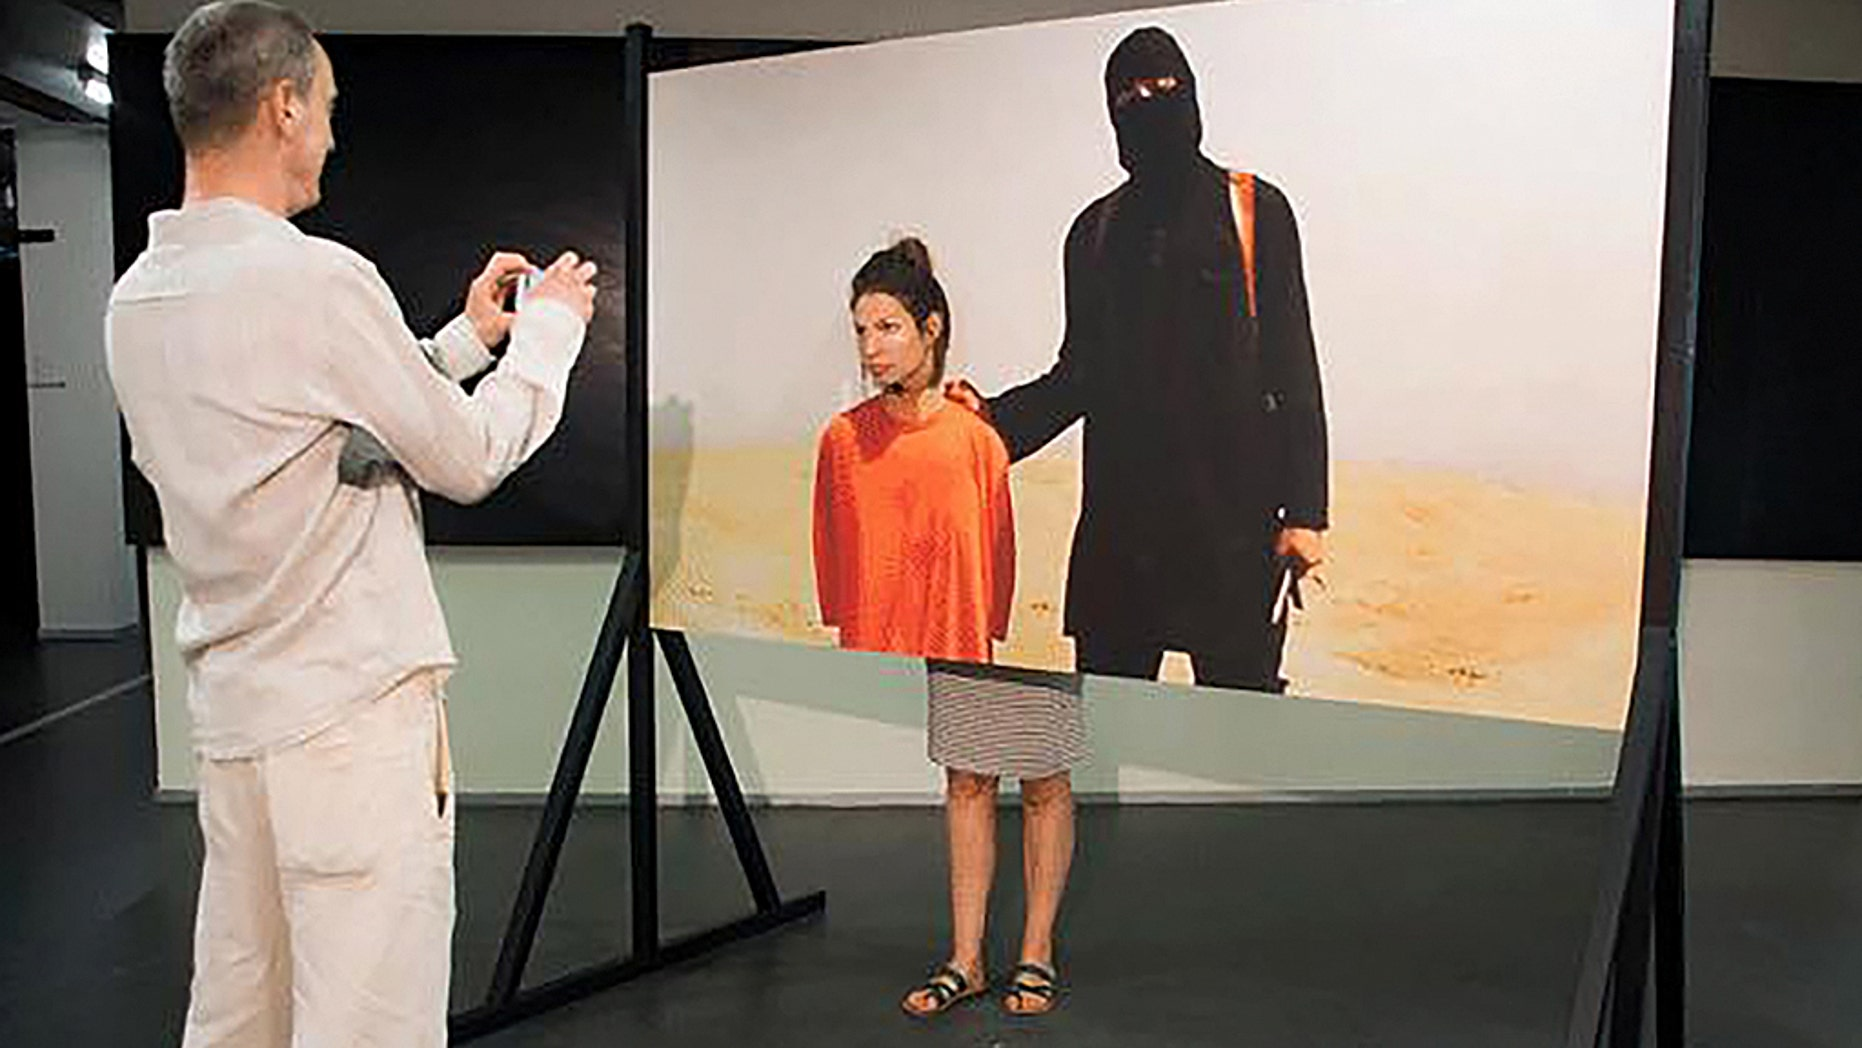 The ISIS artwork on show at the festival An art installation where visitors are encouraged to have a photo taken next to an Islamic State terrorist waiting to behead them has been blasted by politicians